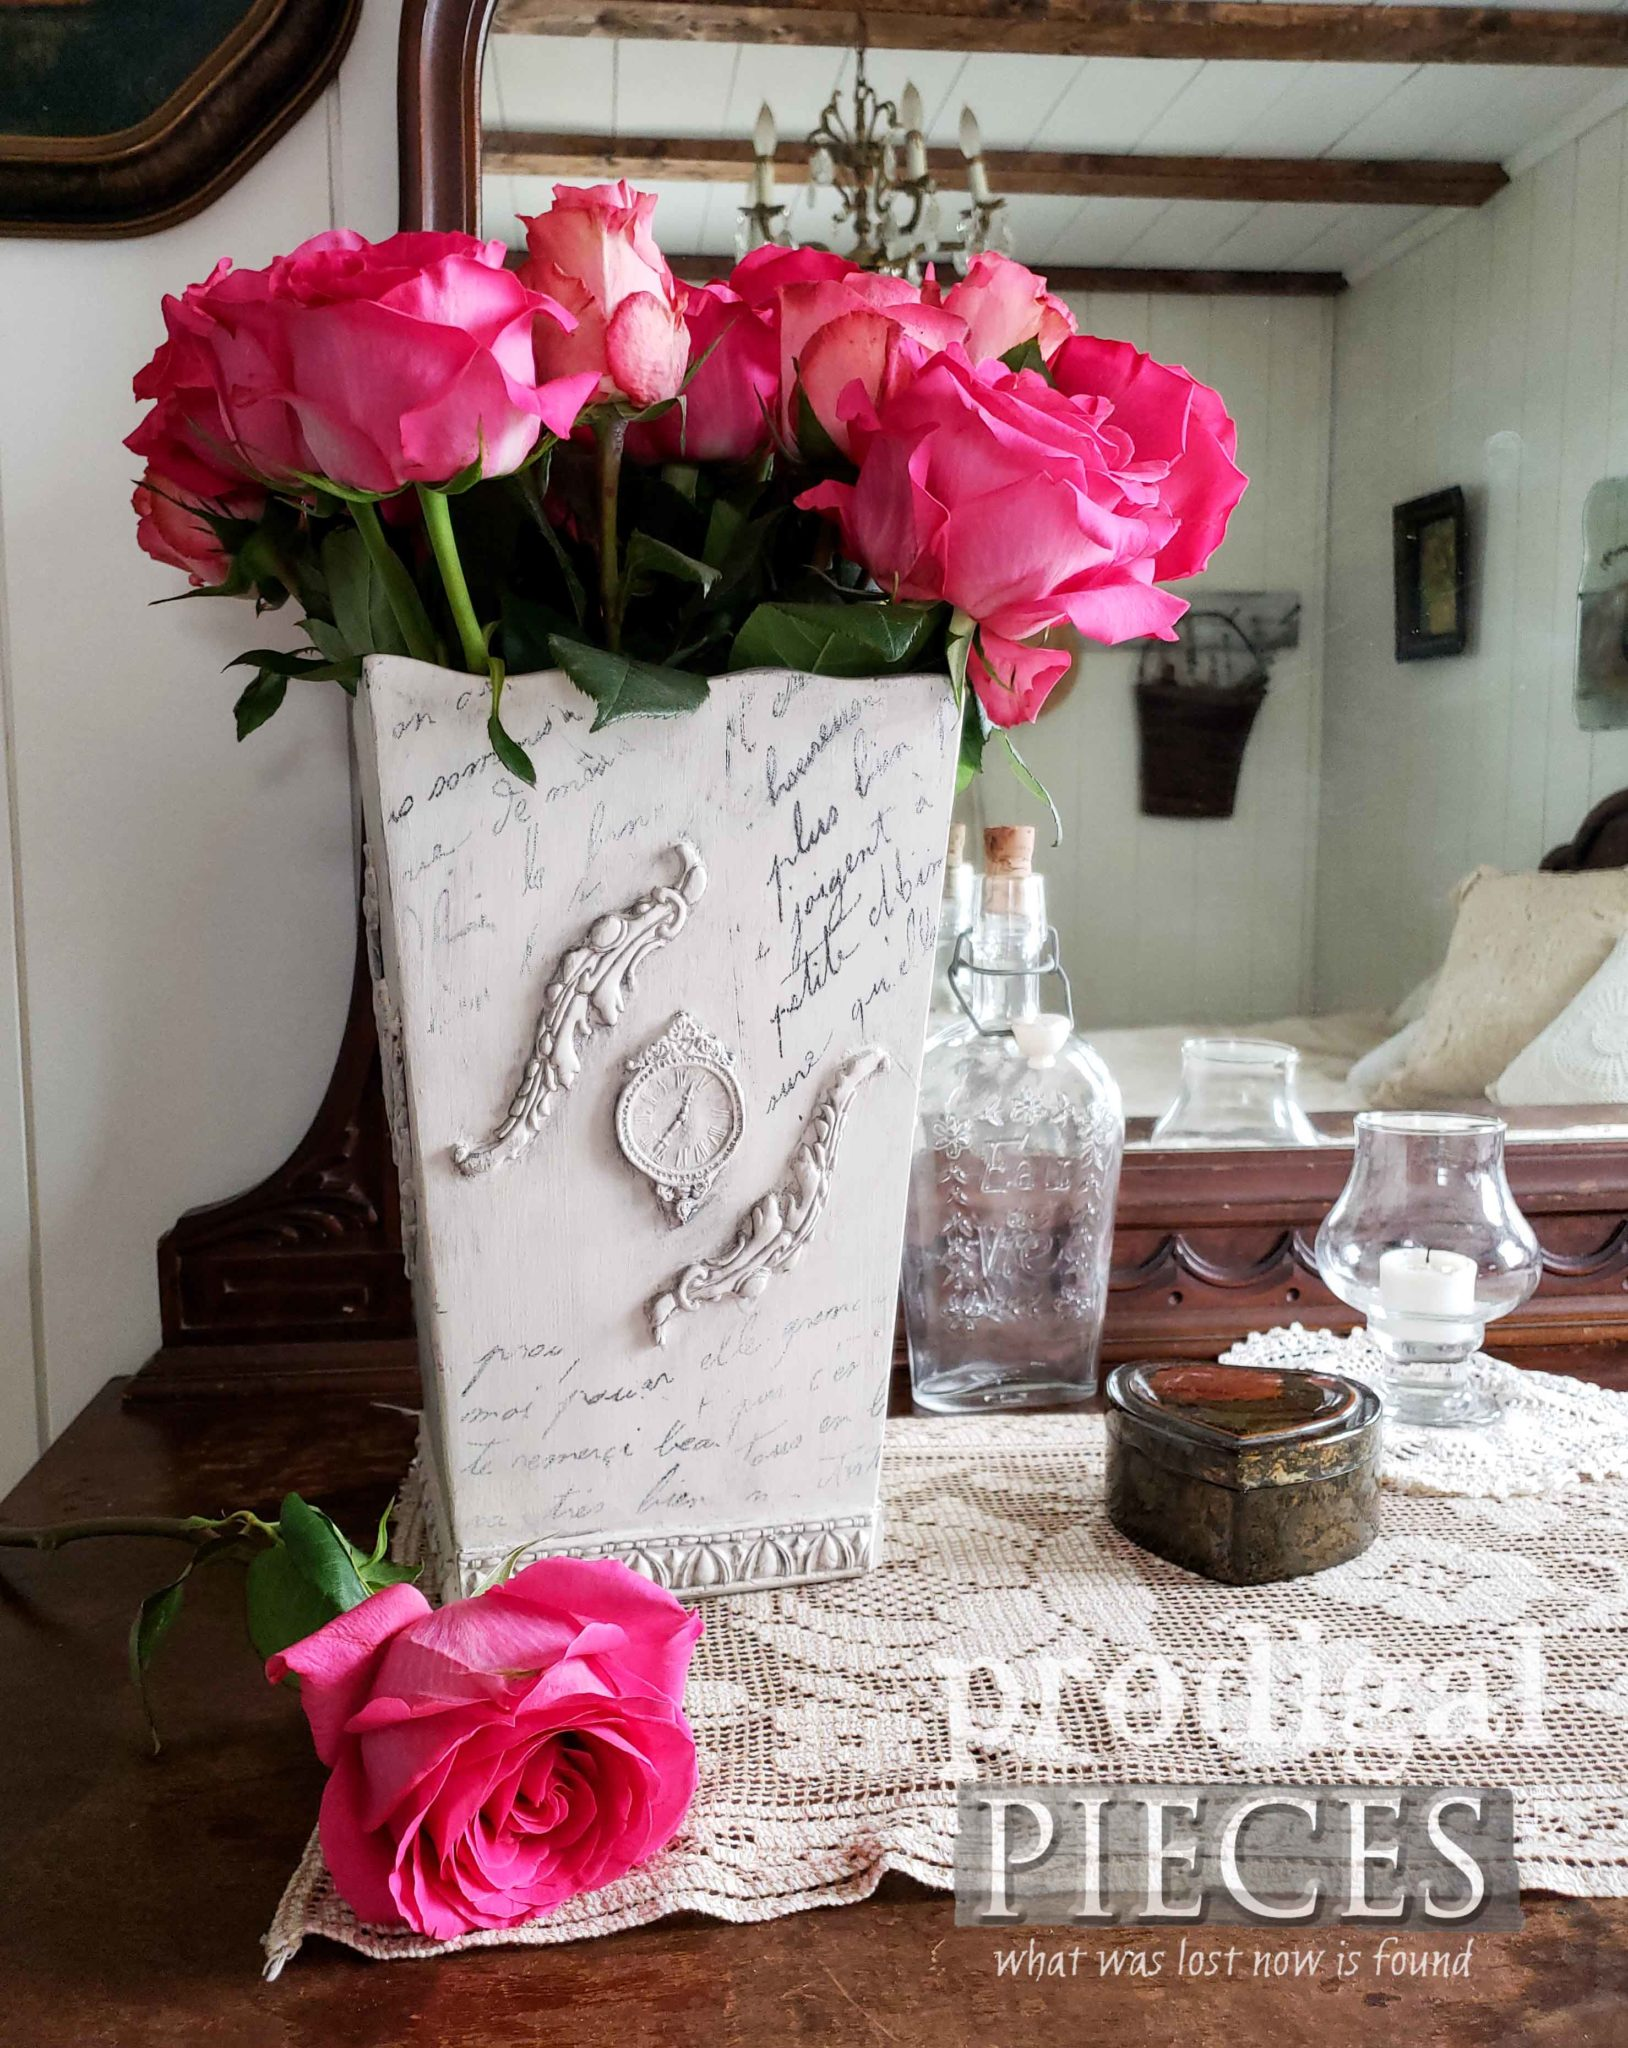 Upcycled Wooden Vase Made New with French Script and Paper Clay Appliques by Larissa of Prodigal Pieces | prodigalpieces.com #prodigalpieces #diy #home #vintage #homedecor